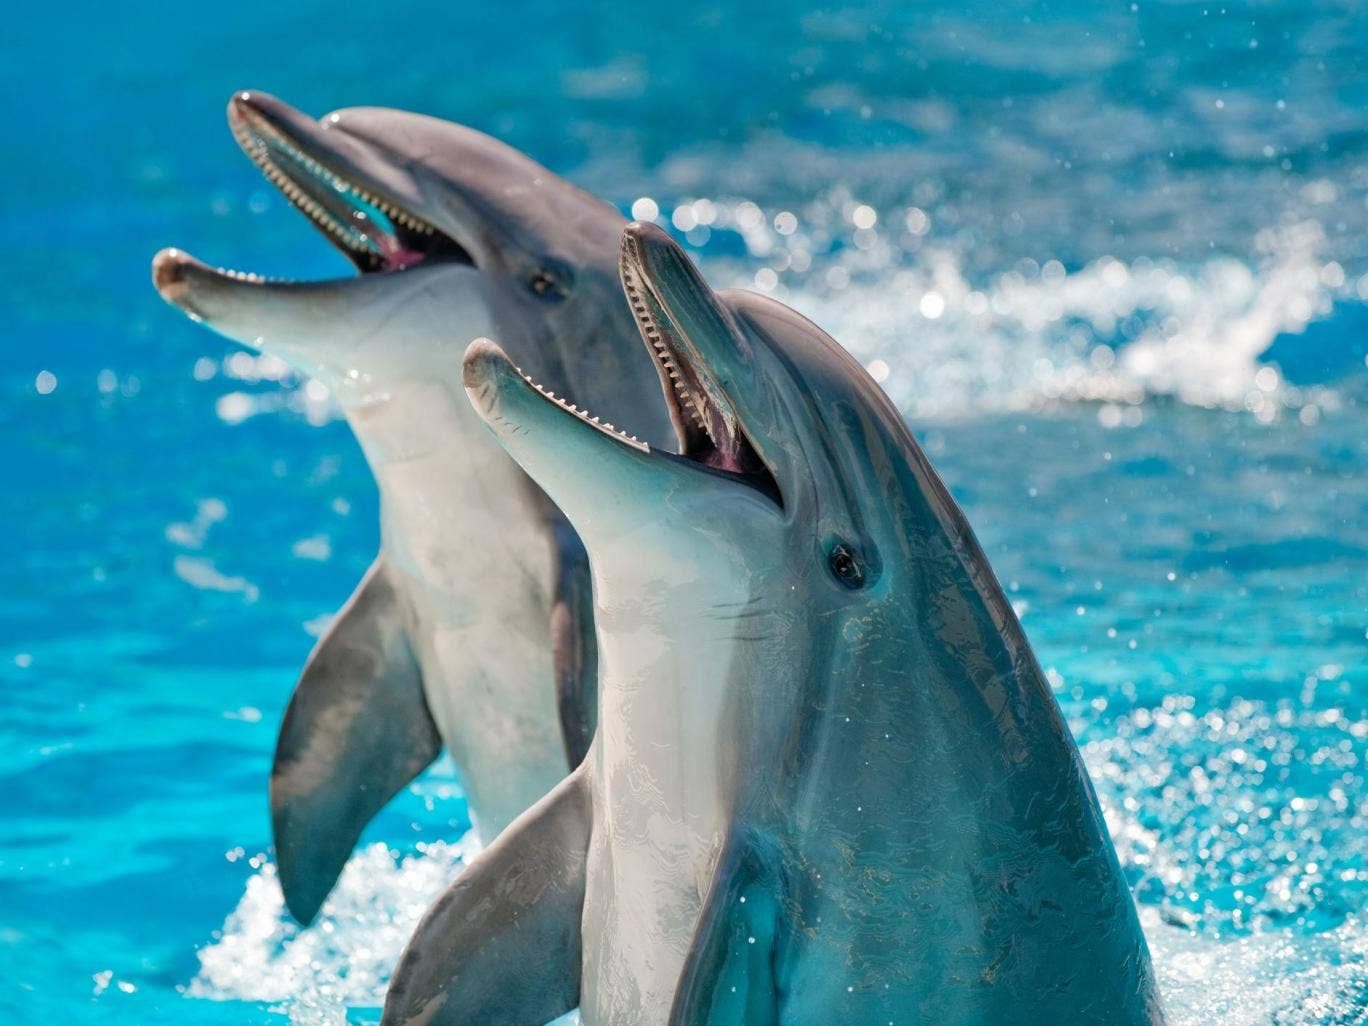 Scientists, Artificial Intelligence, Dolphins